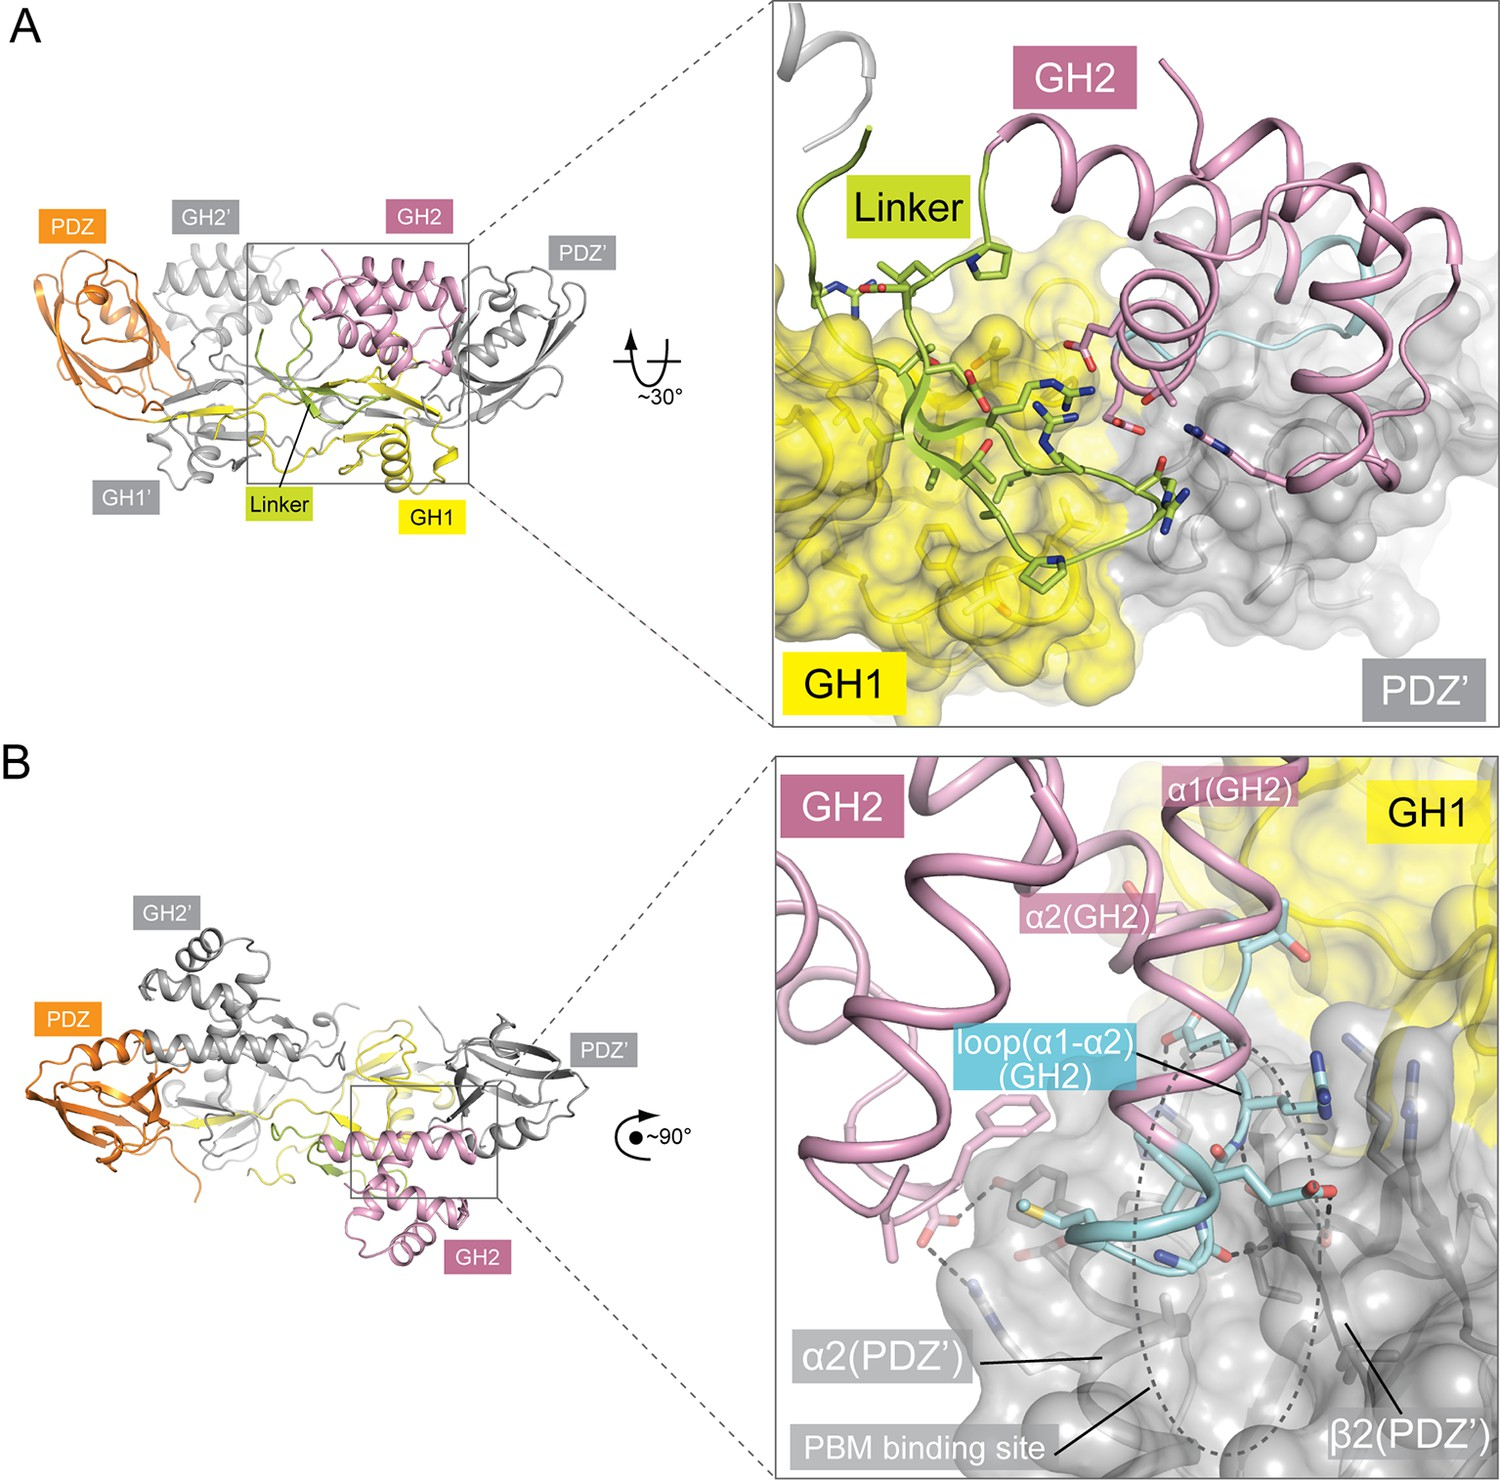 hight resolution of autoinhibitory interactions mediated by the linker gh2 domains in the apo gipc1 structure